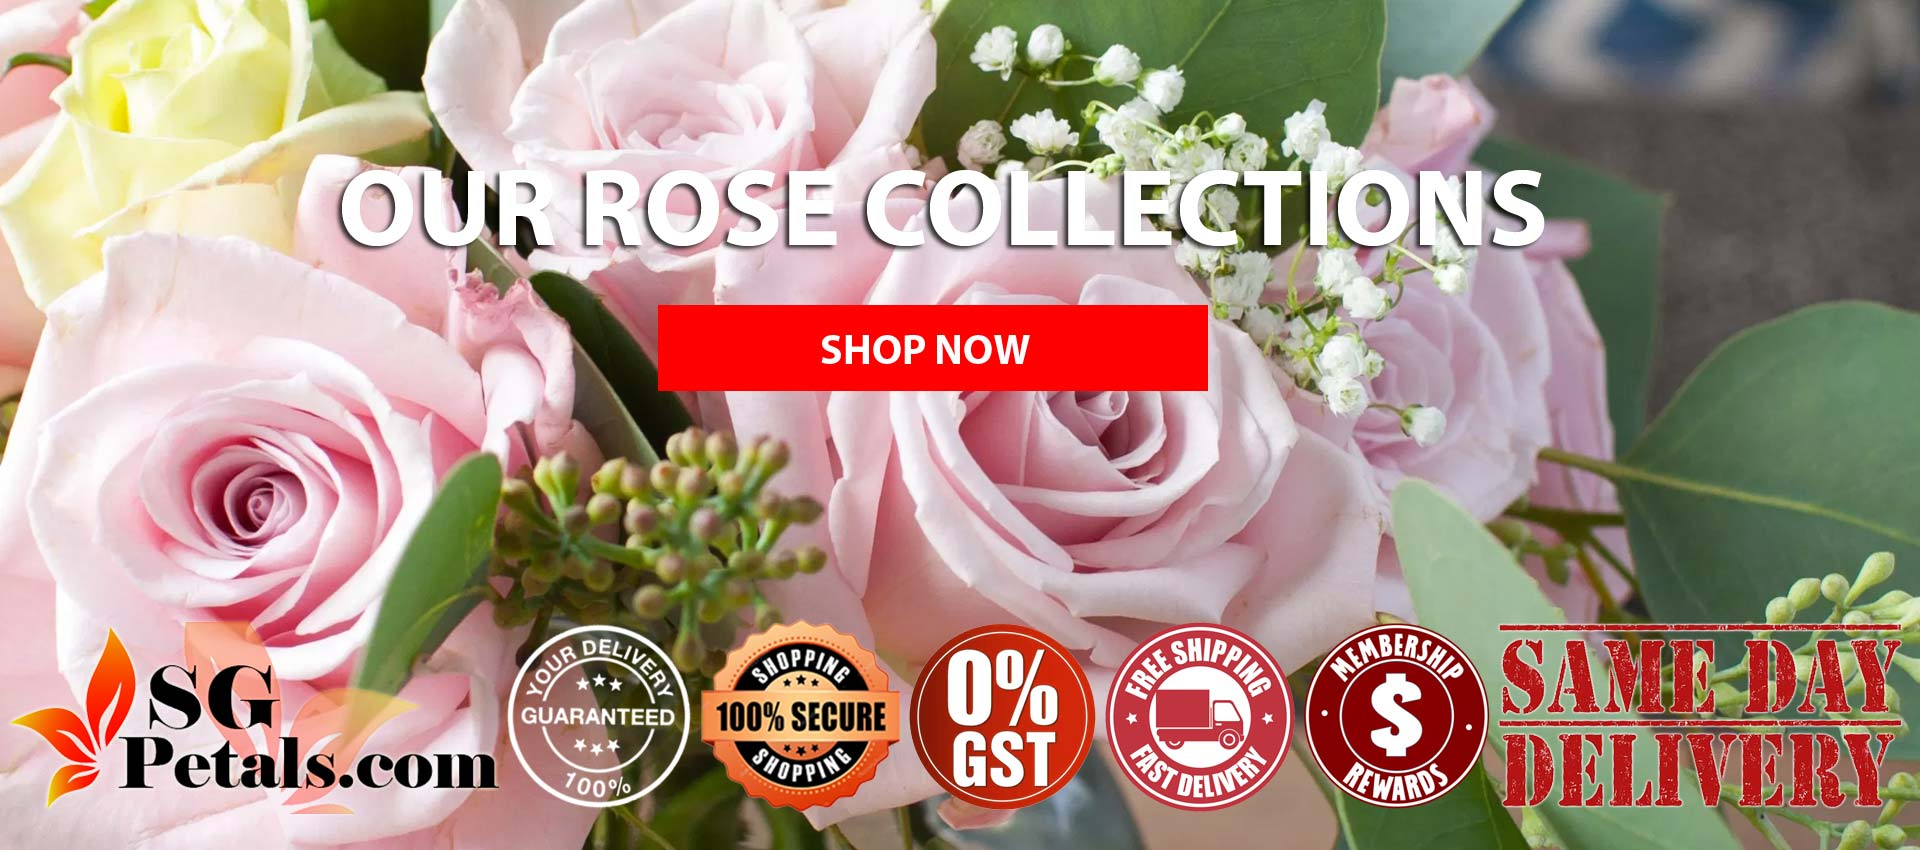 Roses Bouquet | Send Roses Bouquet for your loved one | Sgpetals.com